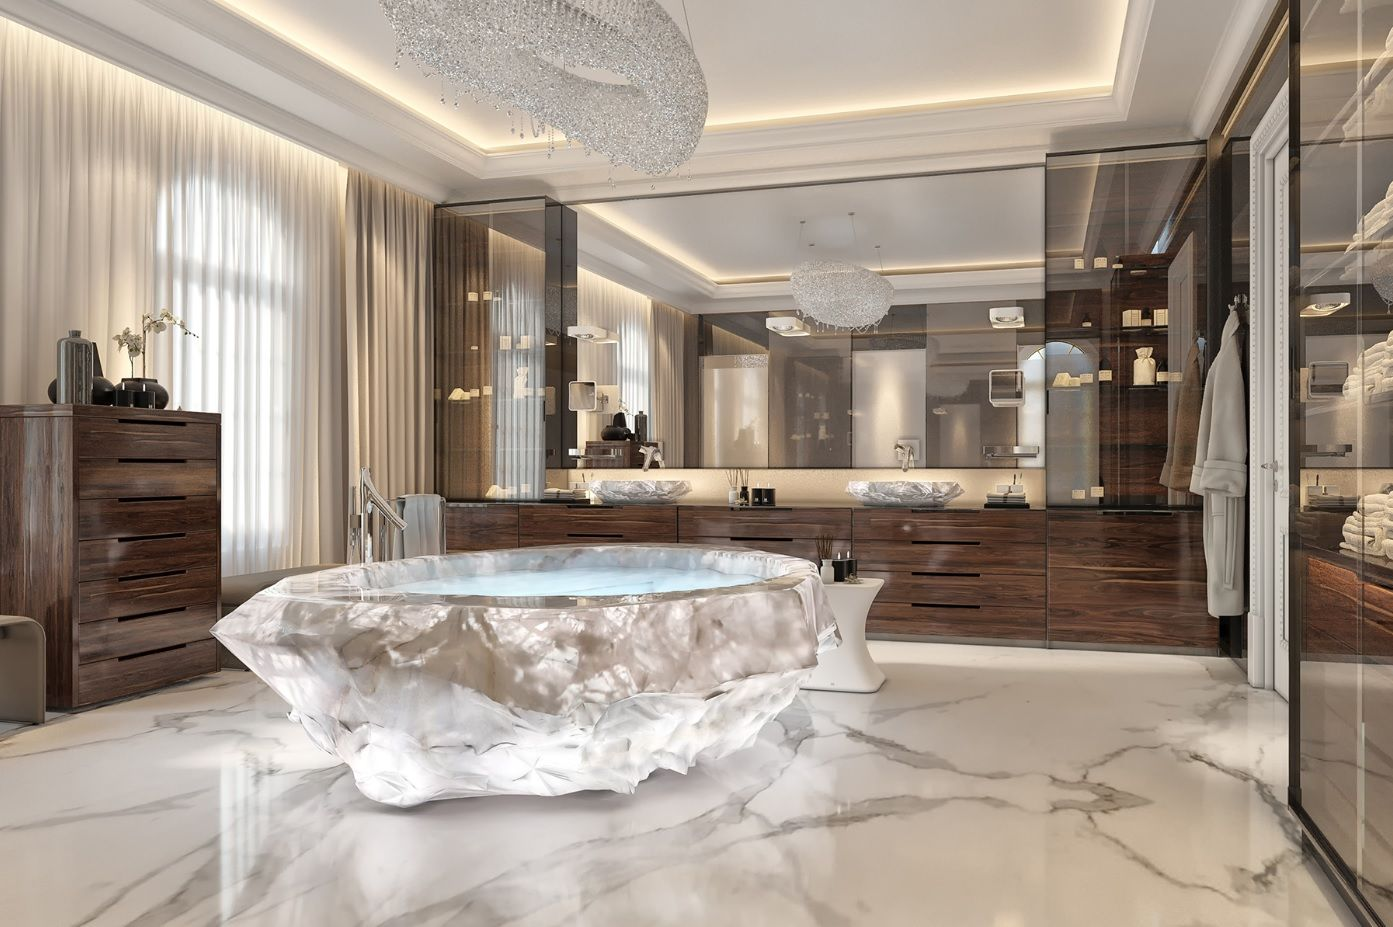 Most expensive bathrooms in the world - The Much Anticipated Xxii Carat Villa Complex On The Celebrity Peppered Palm Jumeriah In Dubai Boasts Some Of The Most Expensive Bathrooms In The World